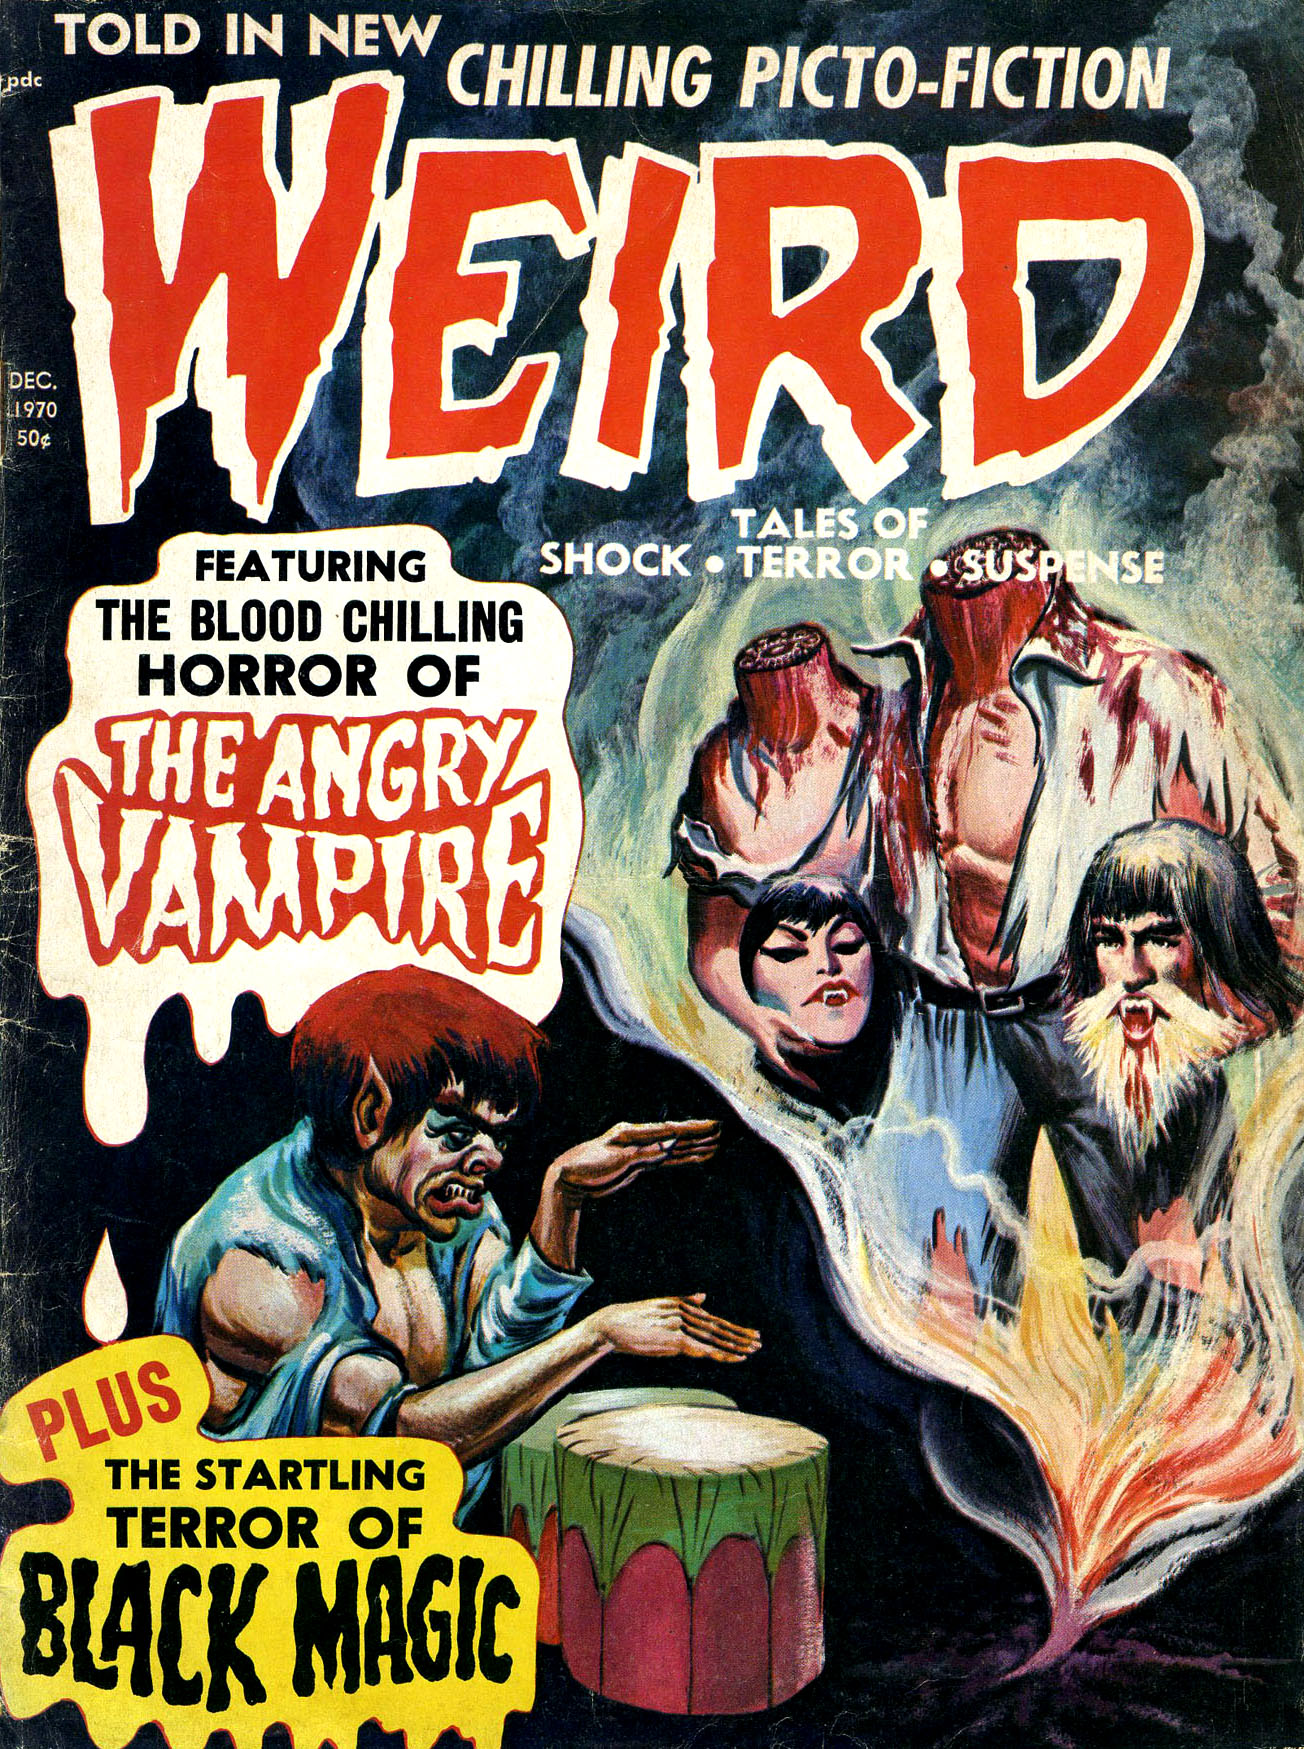 Weird Vol. 04 #6 (Eerie Publications, 1970)